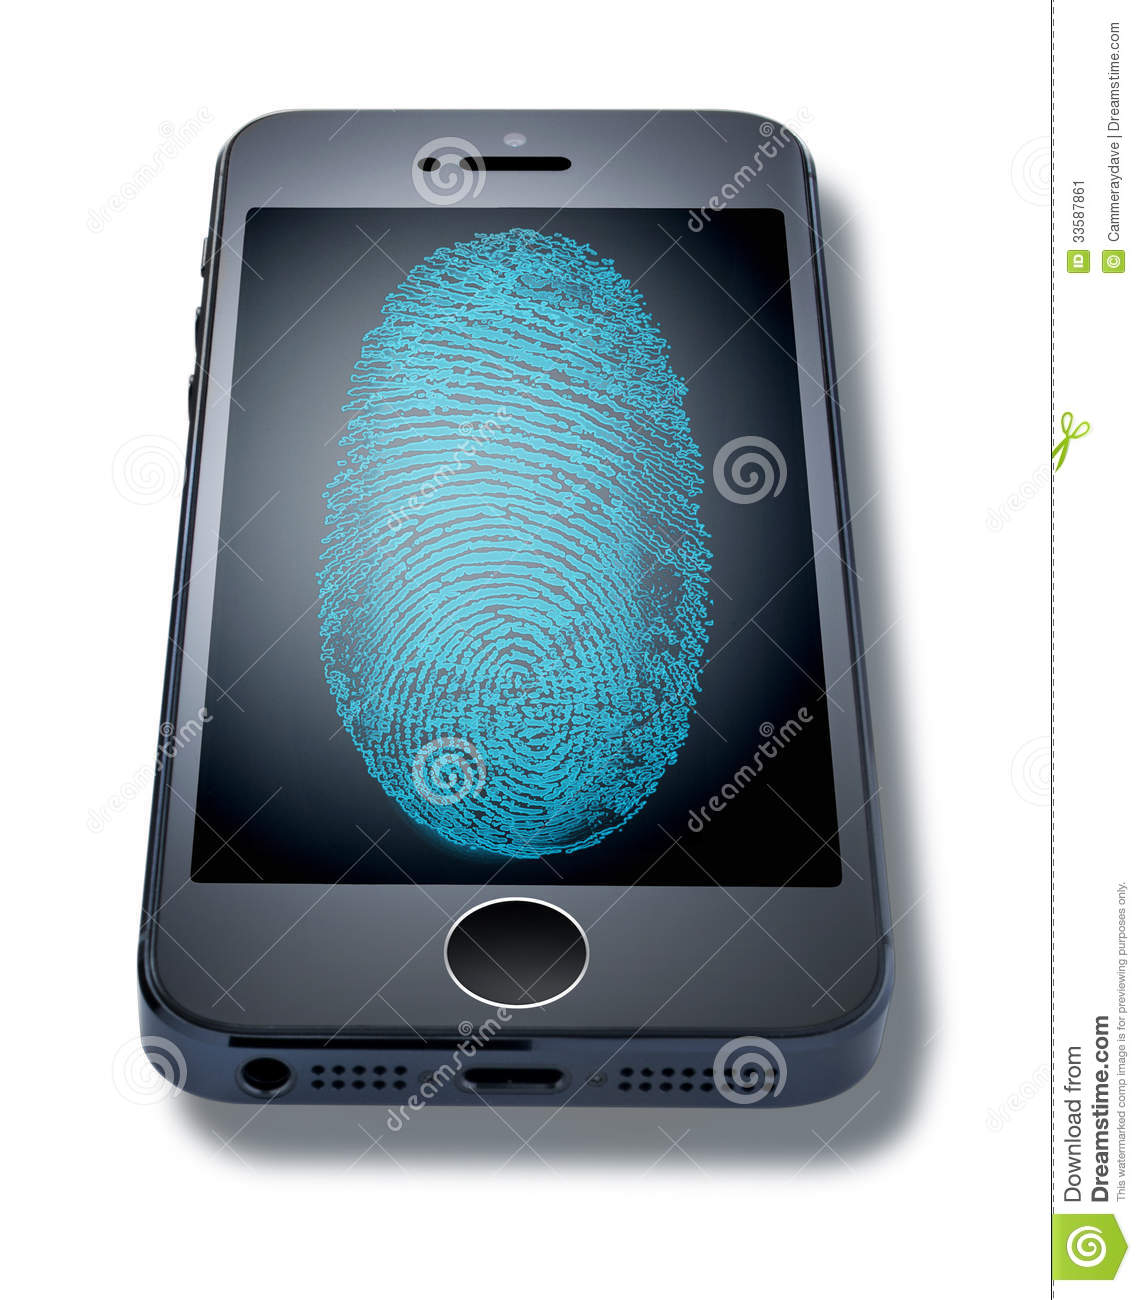 iphone 5s fingerprint iphone fingerprint cell phone editorial photo image 11196